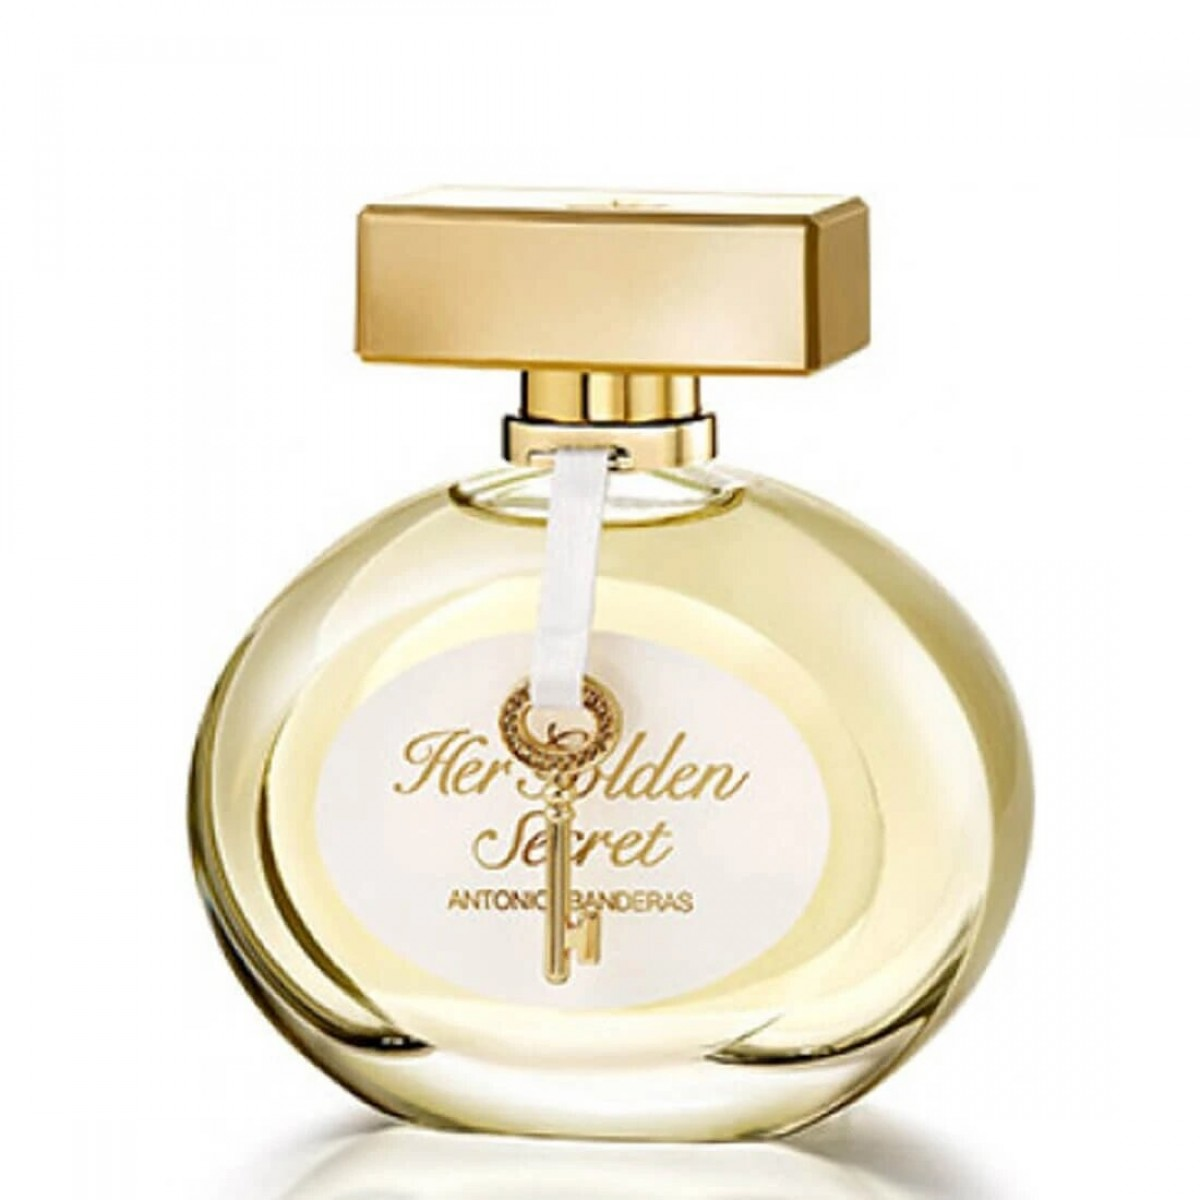 Her Golden Secret Eau de Toilette